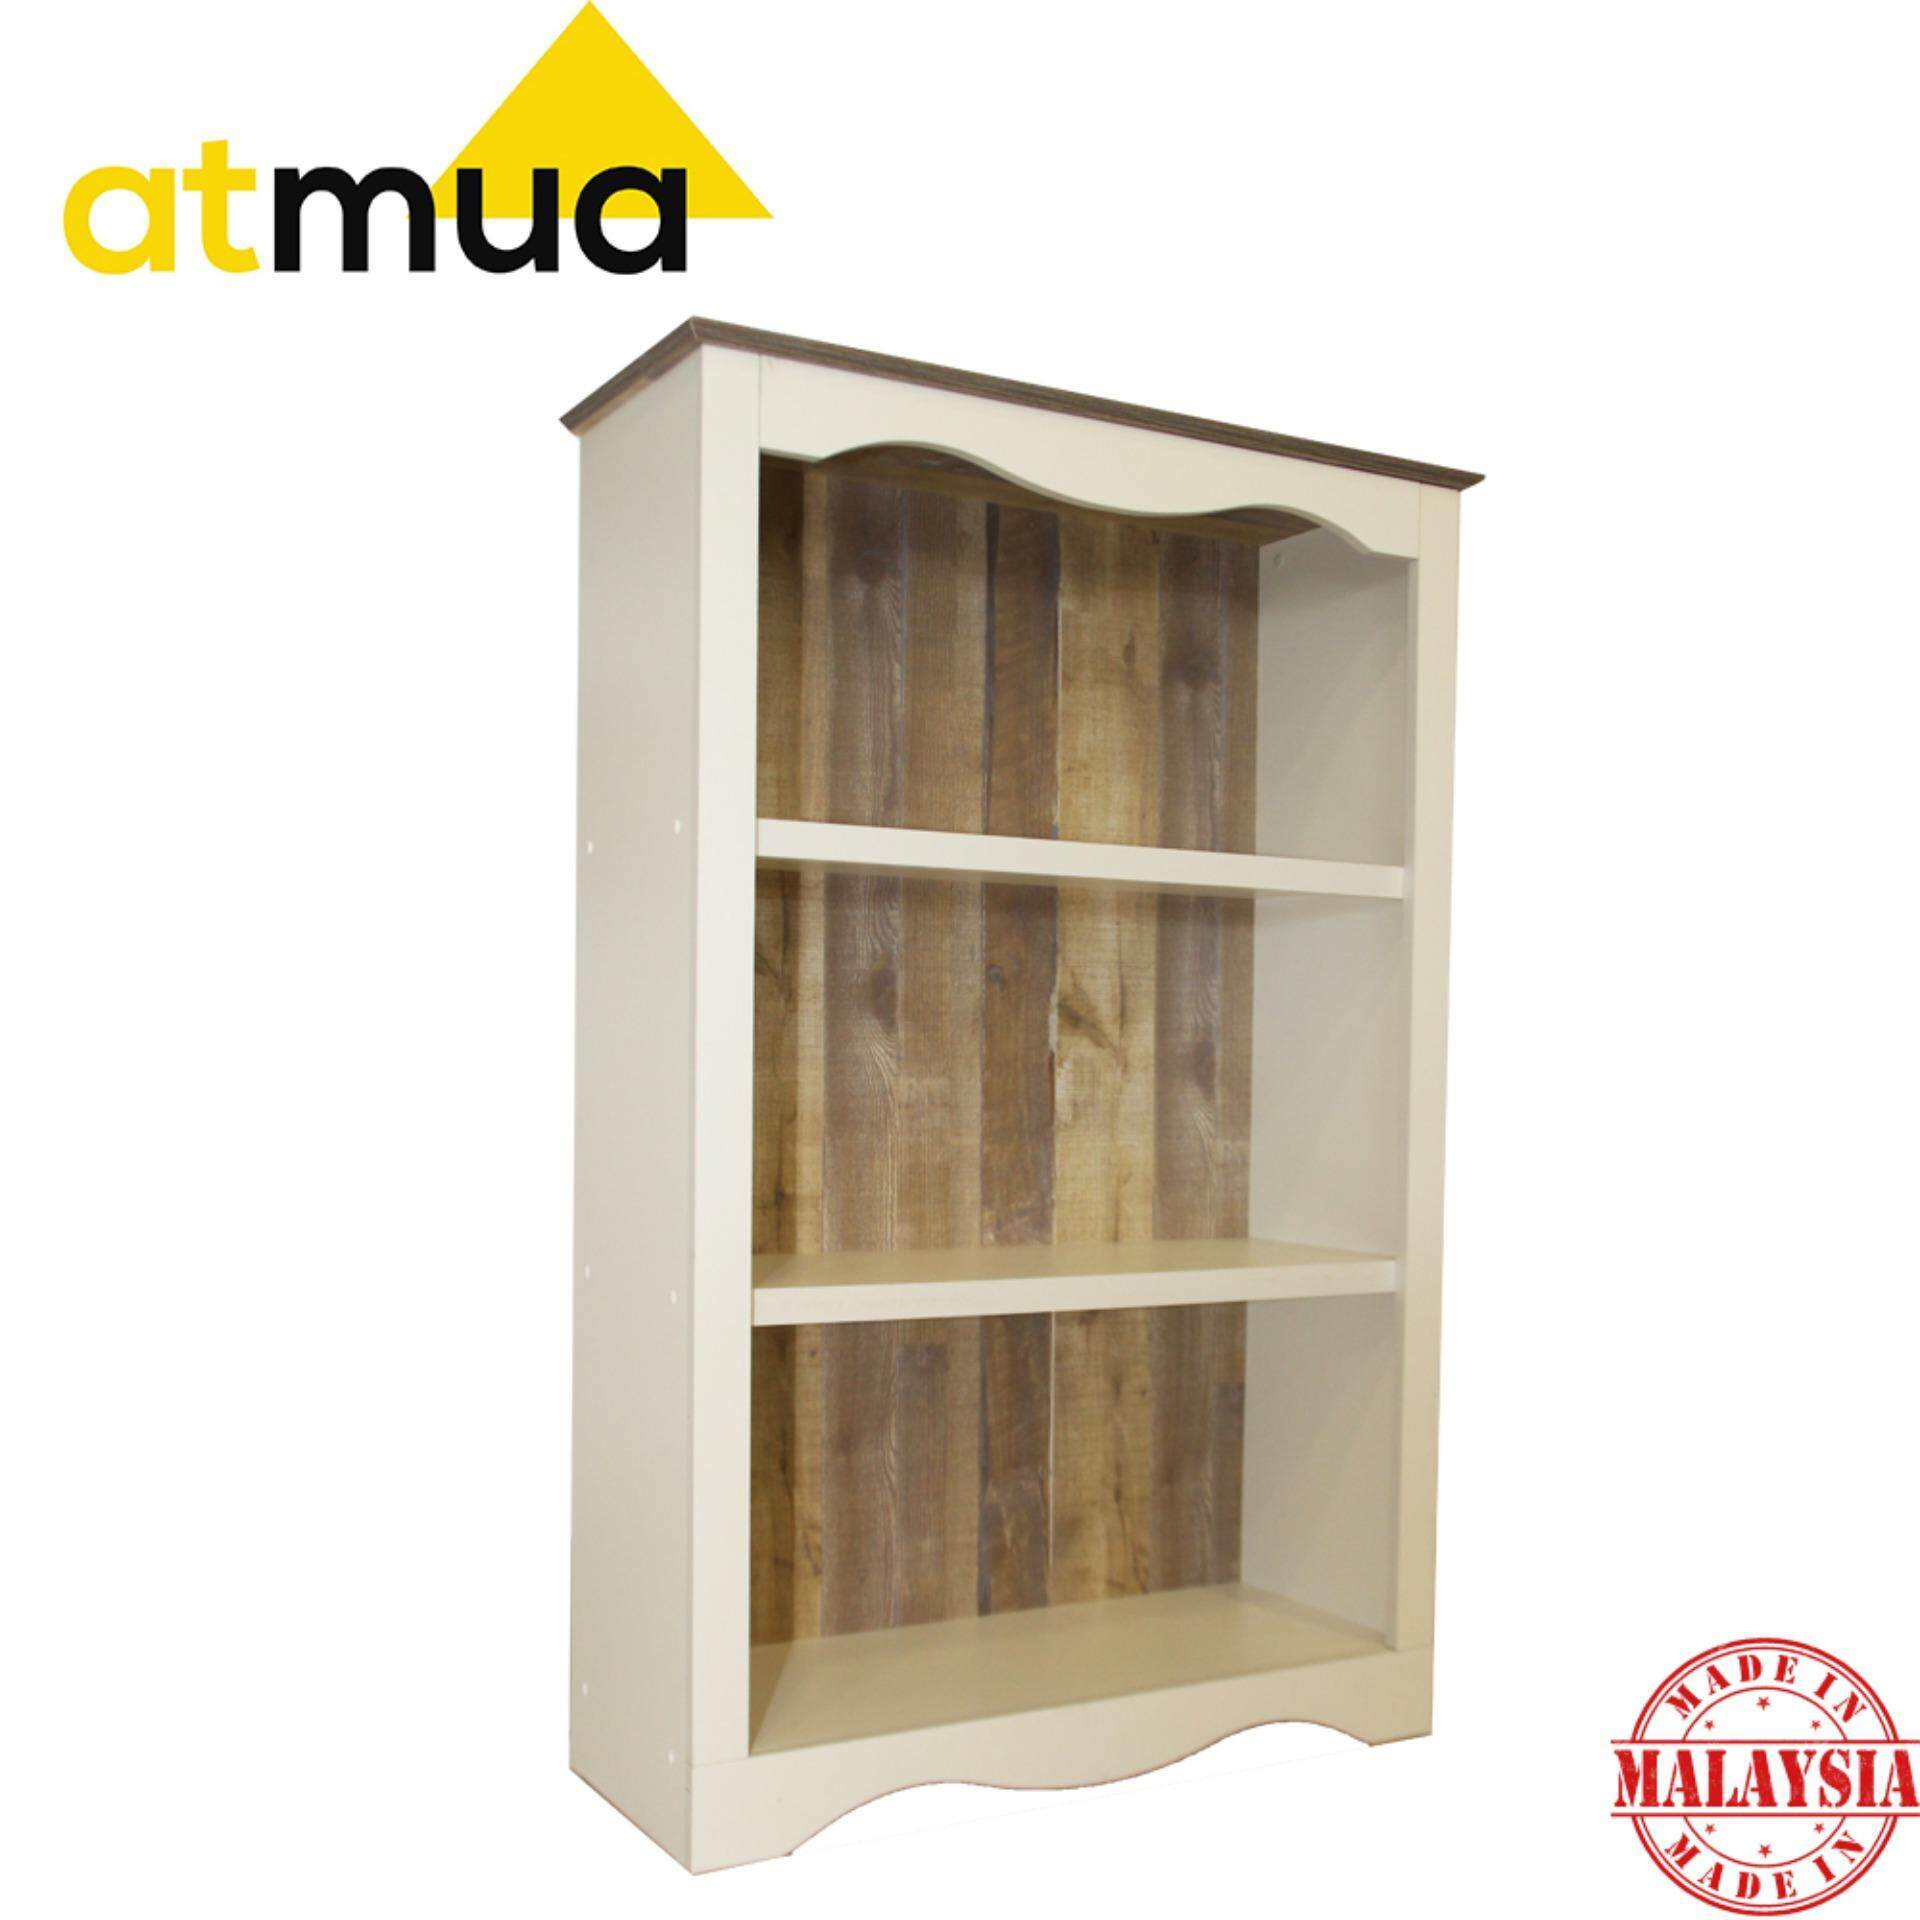 Atmua Ibul 3 Tier Book Shelf [High Quality Partical Board]